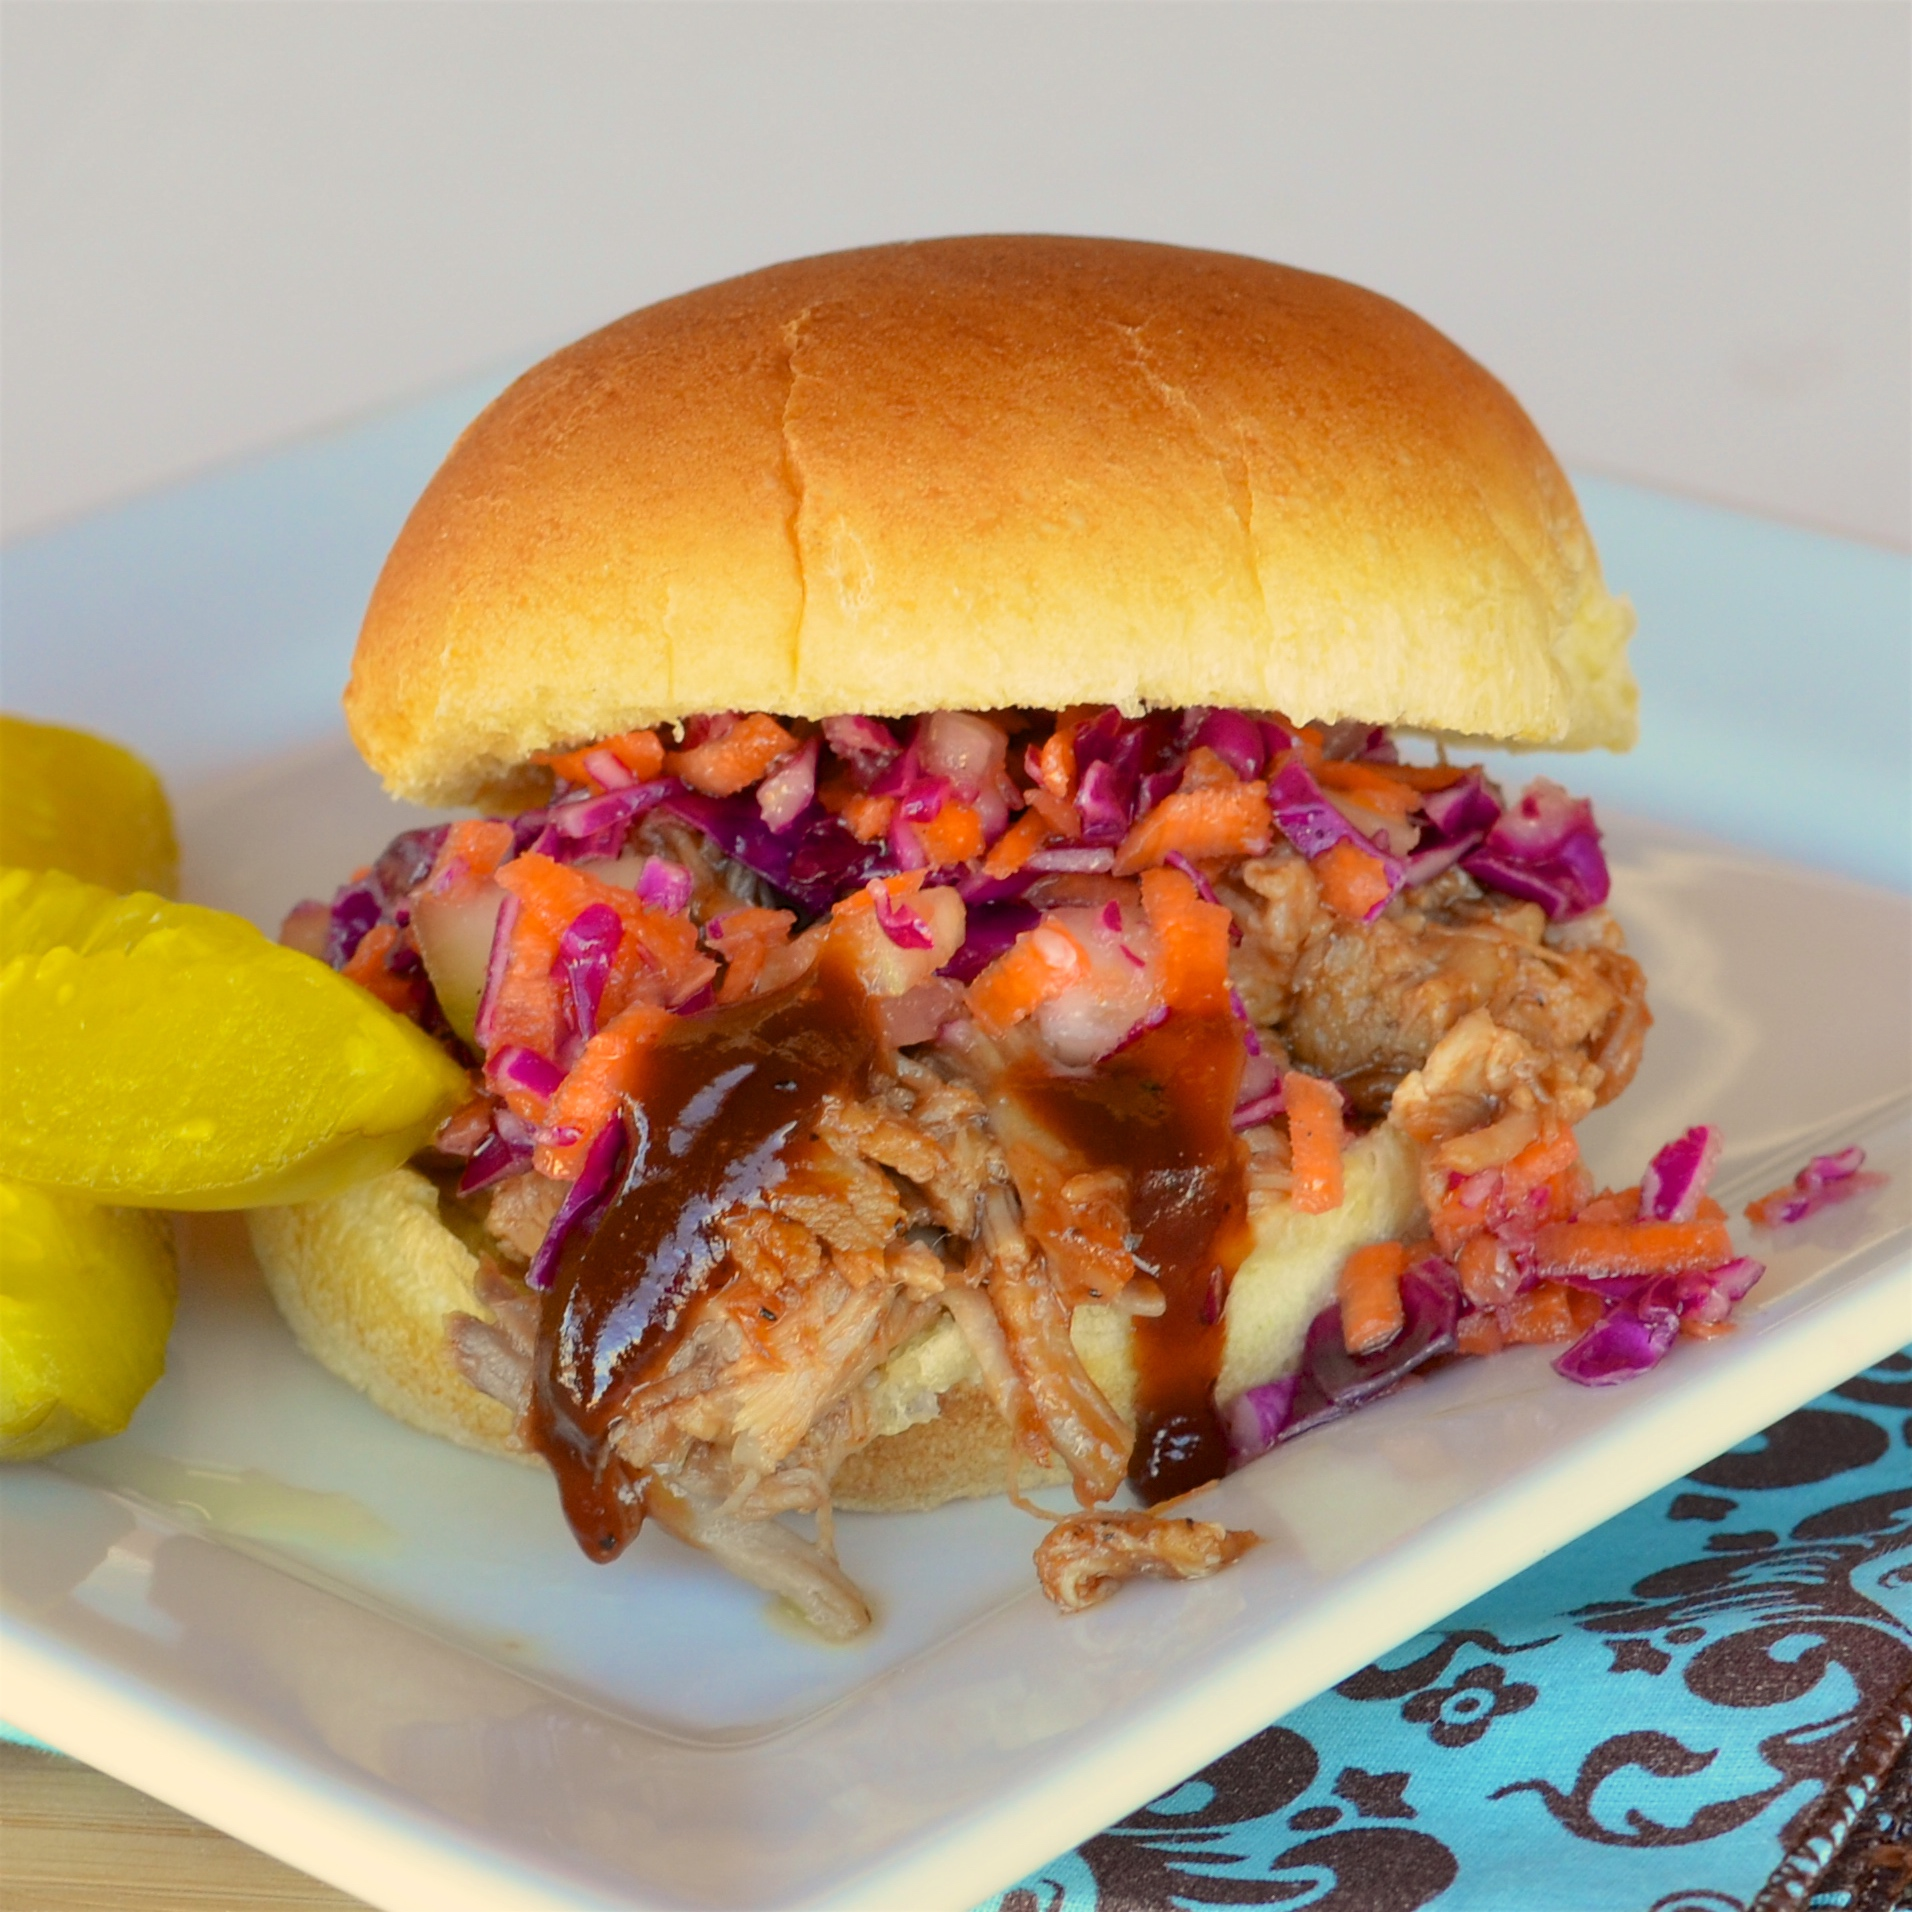 Barbecued Pulled Pork with Sweet & Sour Slaw Lela